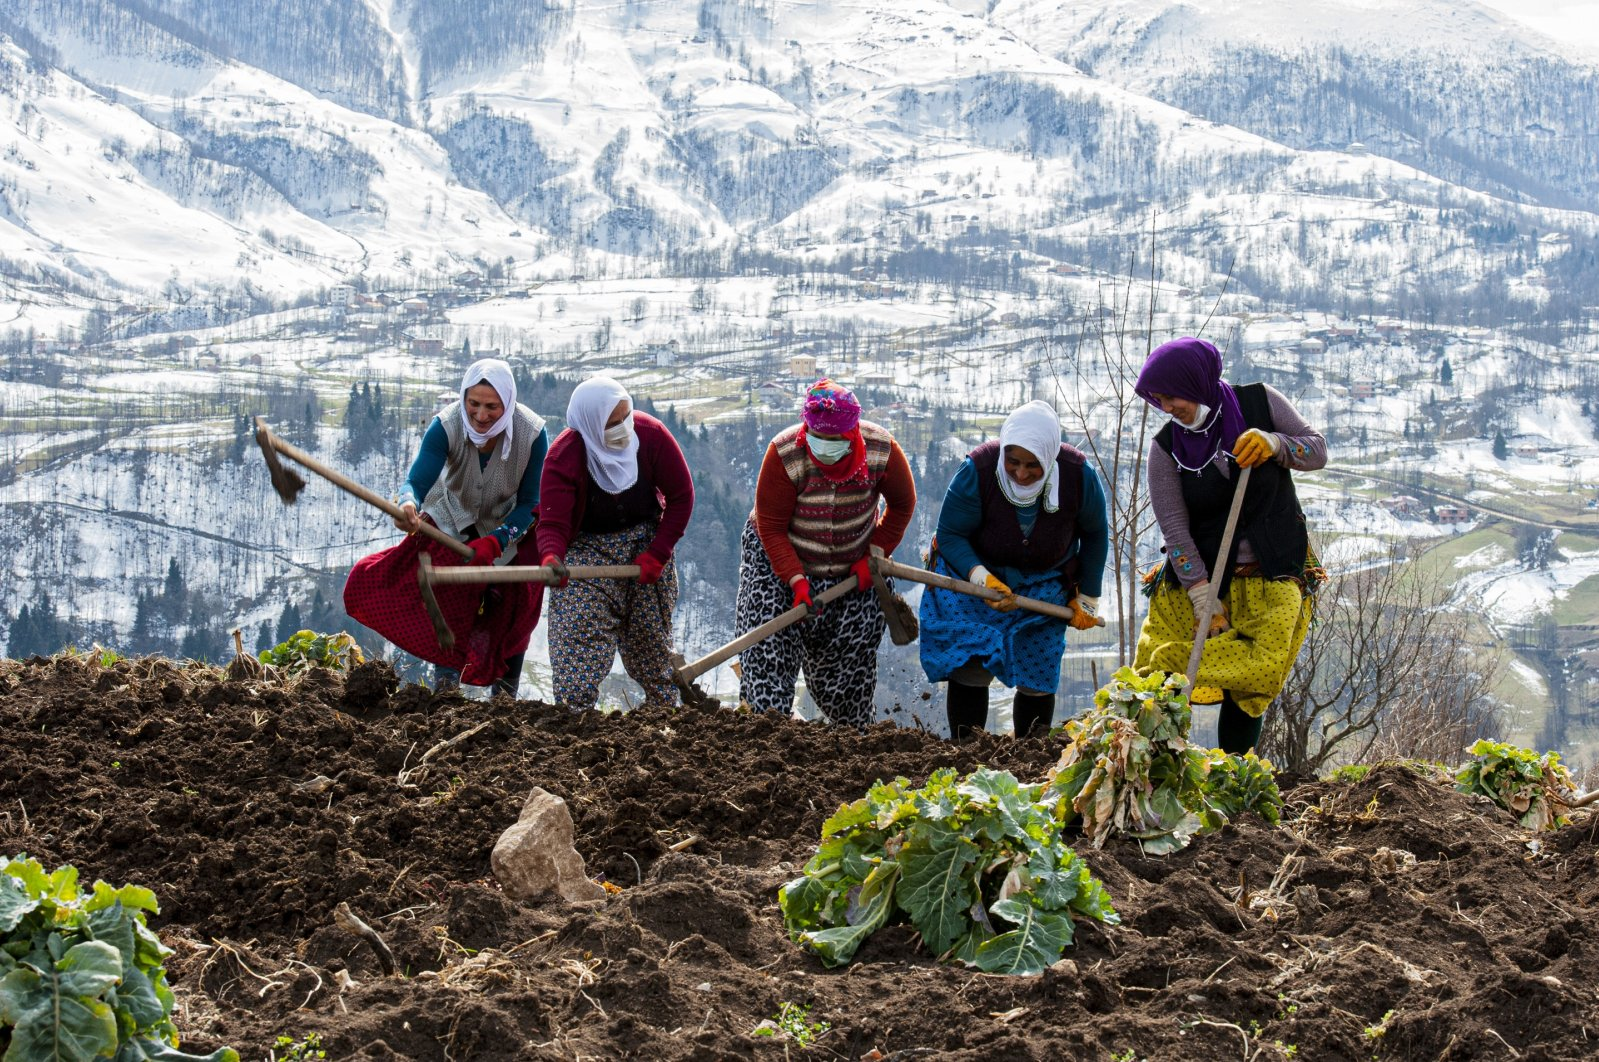 Women work in a field in Trabzon, northern Turkey, March 7, 2021. (DHA PHOTO)